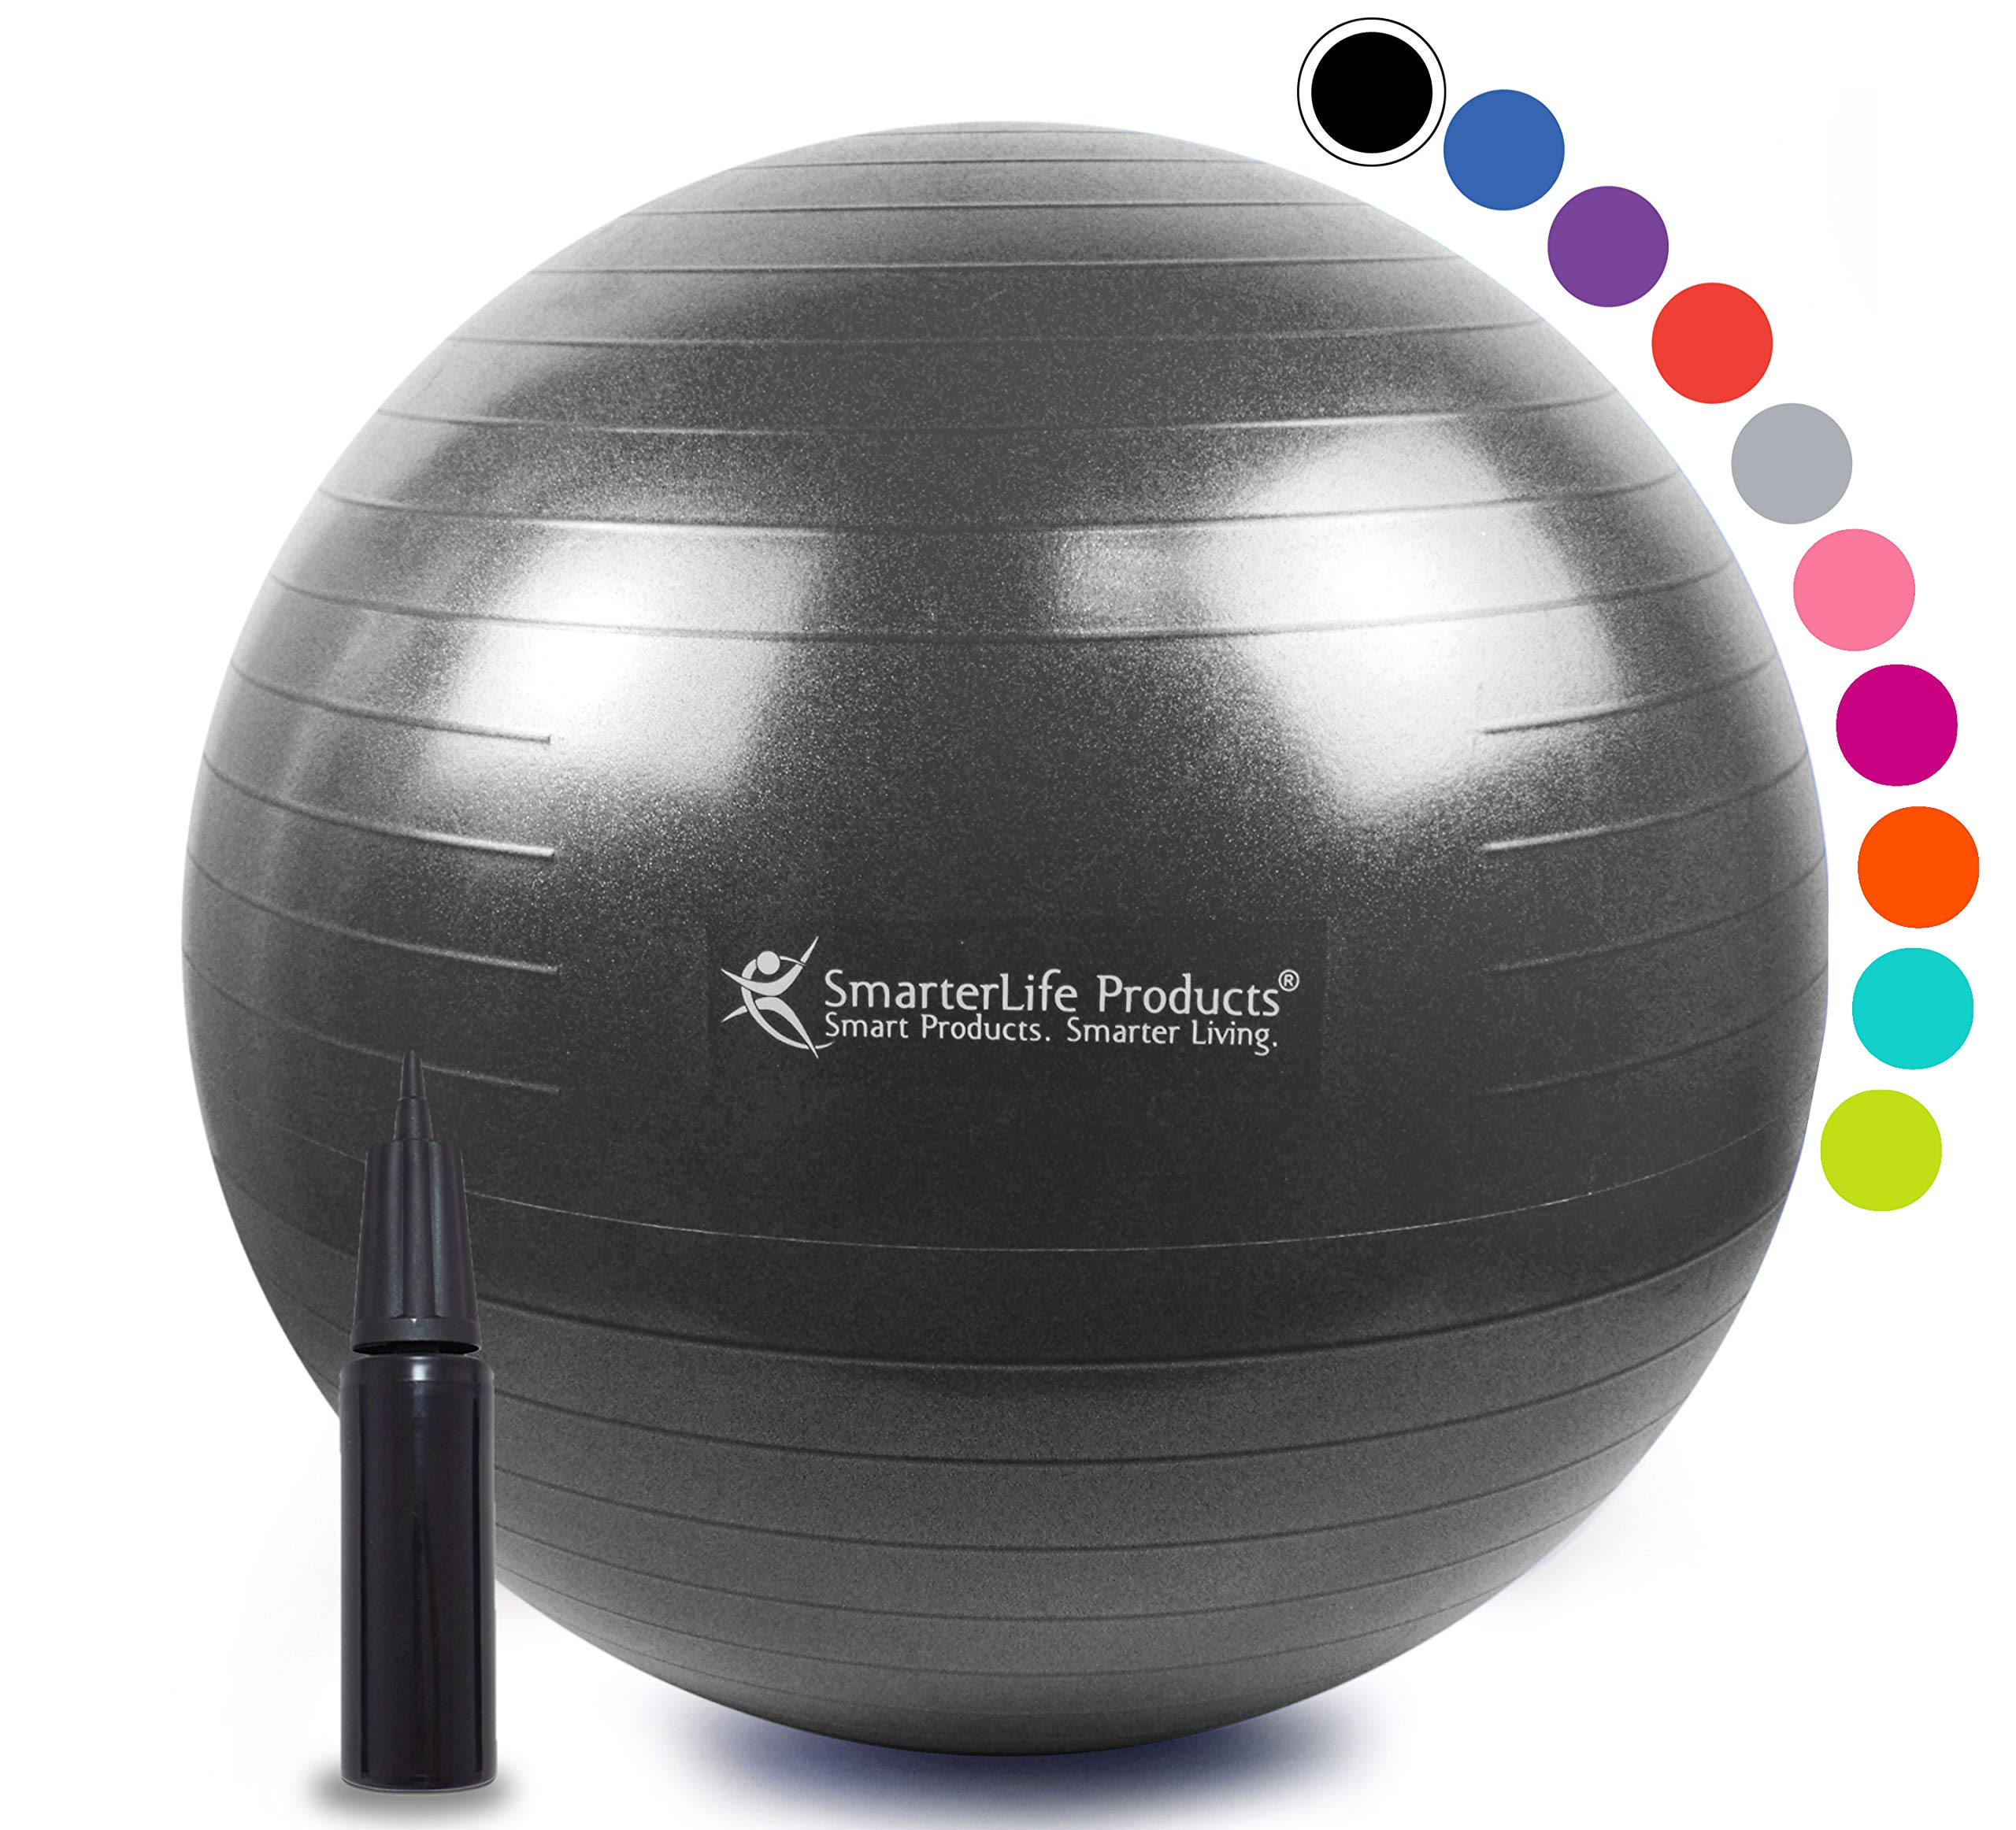 Exercise Ball for Yoga, Balance, Stability from SmarterLife - Fitness, Pilates, Birthing, Therapy, Office Ball Chair, Classroom Flexible Seating - Anti Burst, Non Slip + Workout Guide (Black, 65cm) by SmarterLife Products (Image #8)